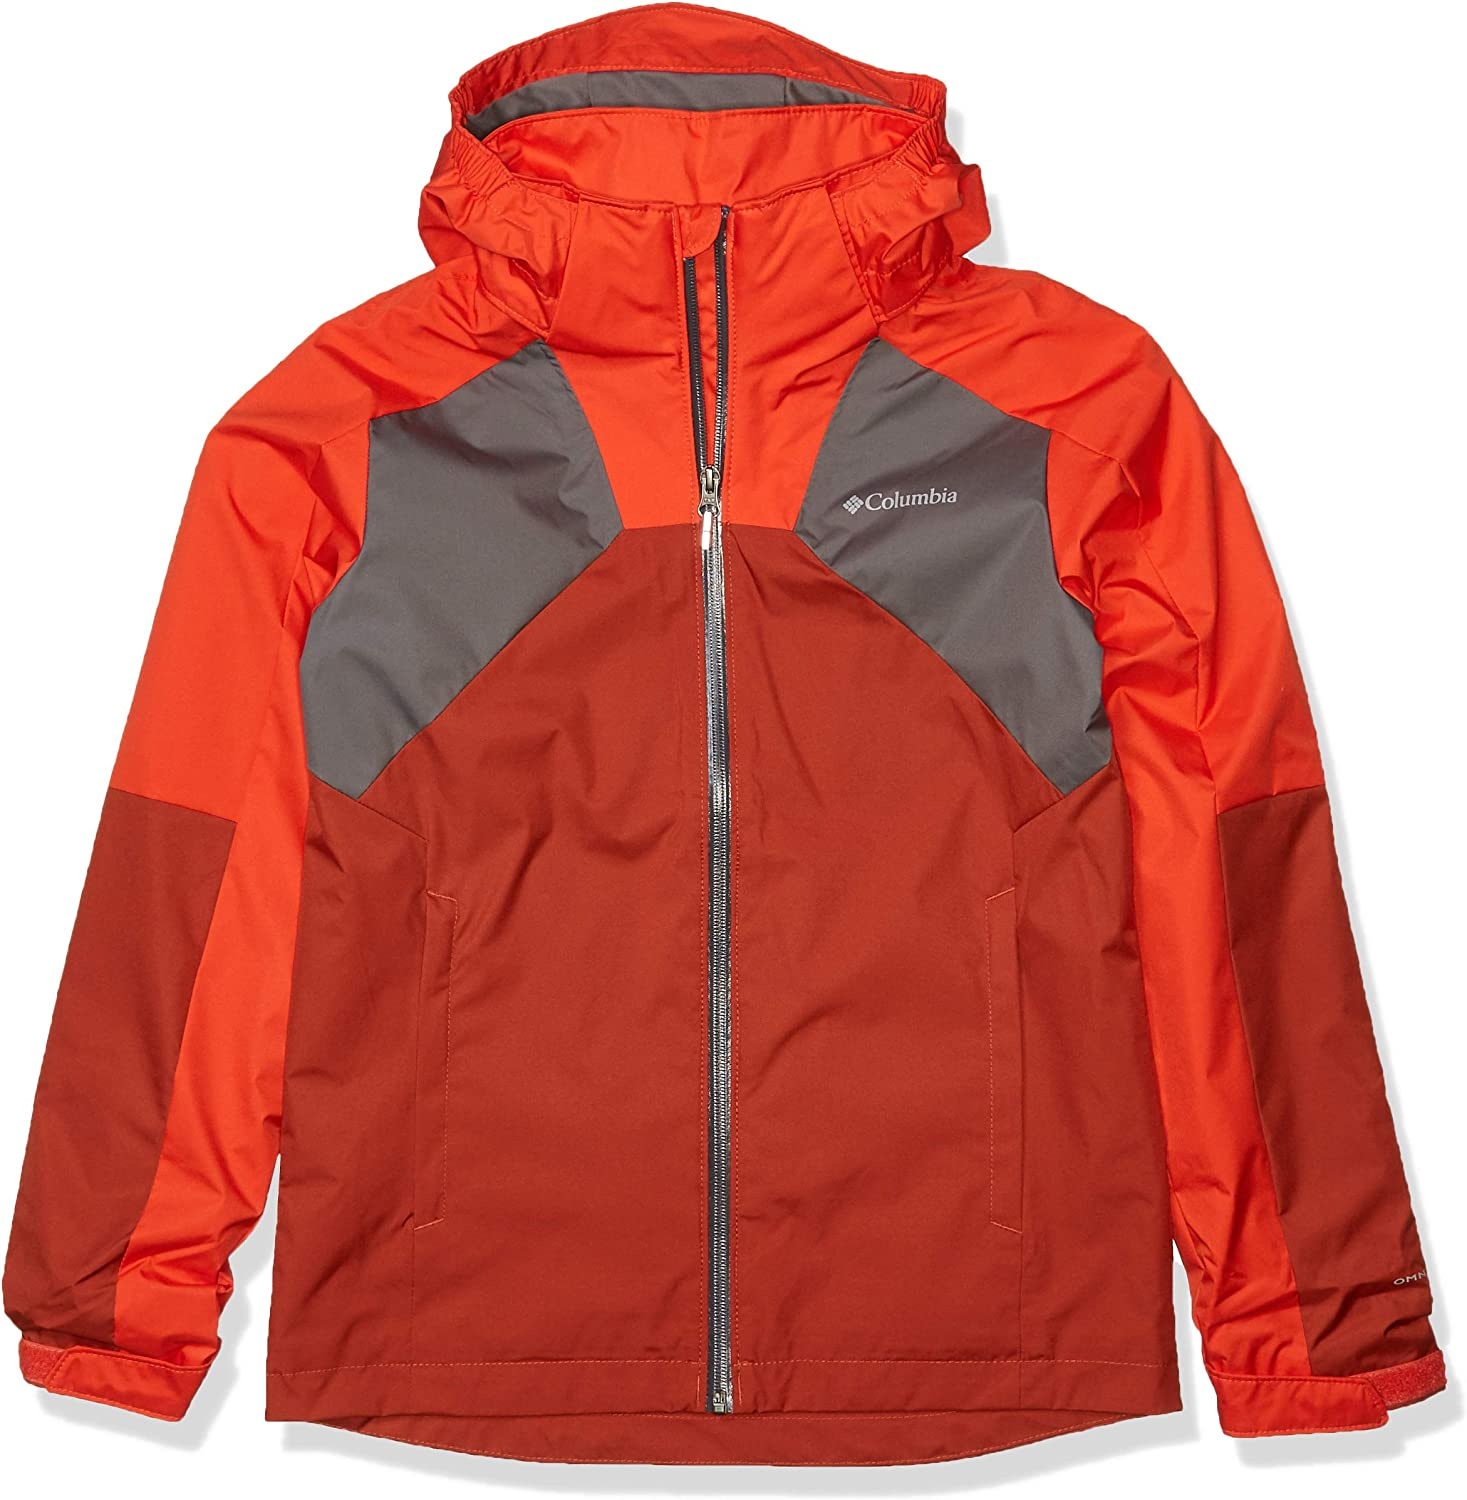 Columbia Baby-Girls Mail order New mail order Youth Boy's Jacket Waterproof Scape Rain